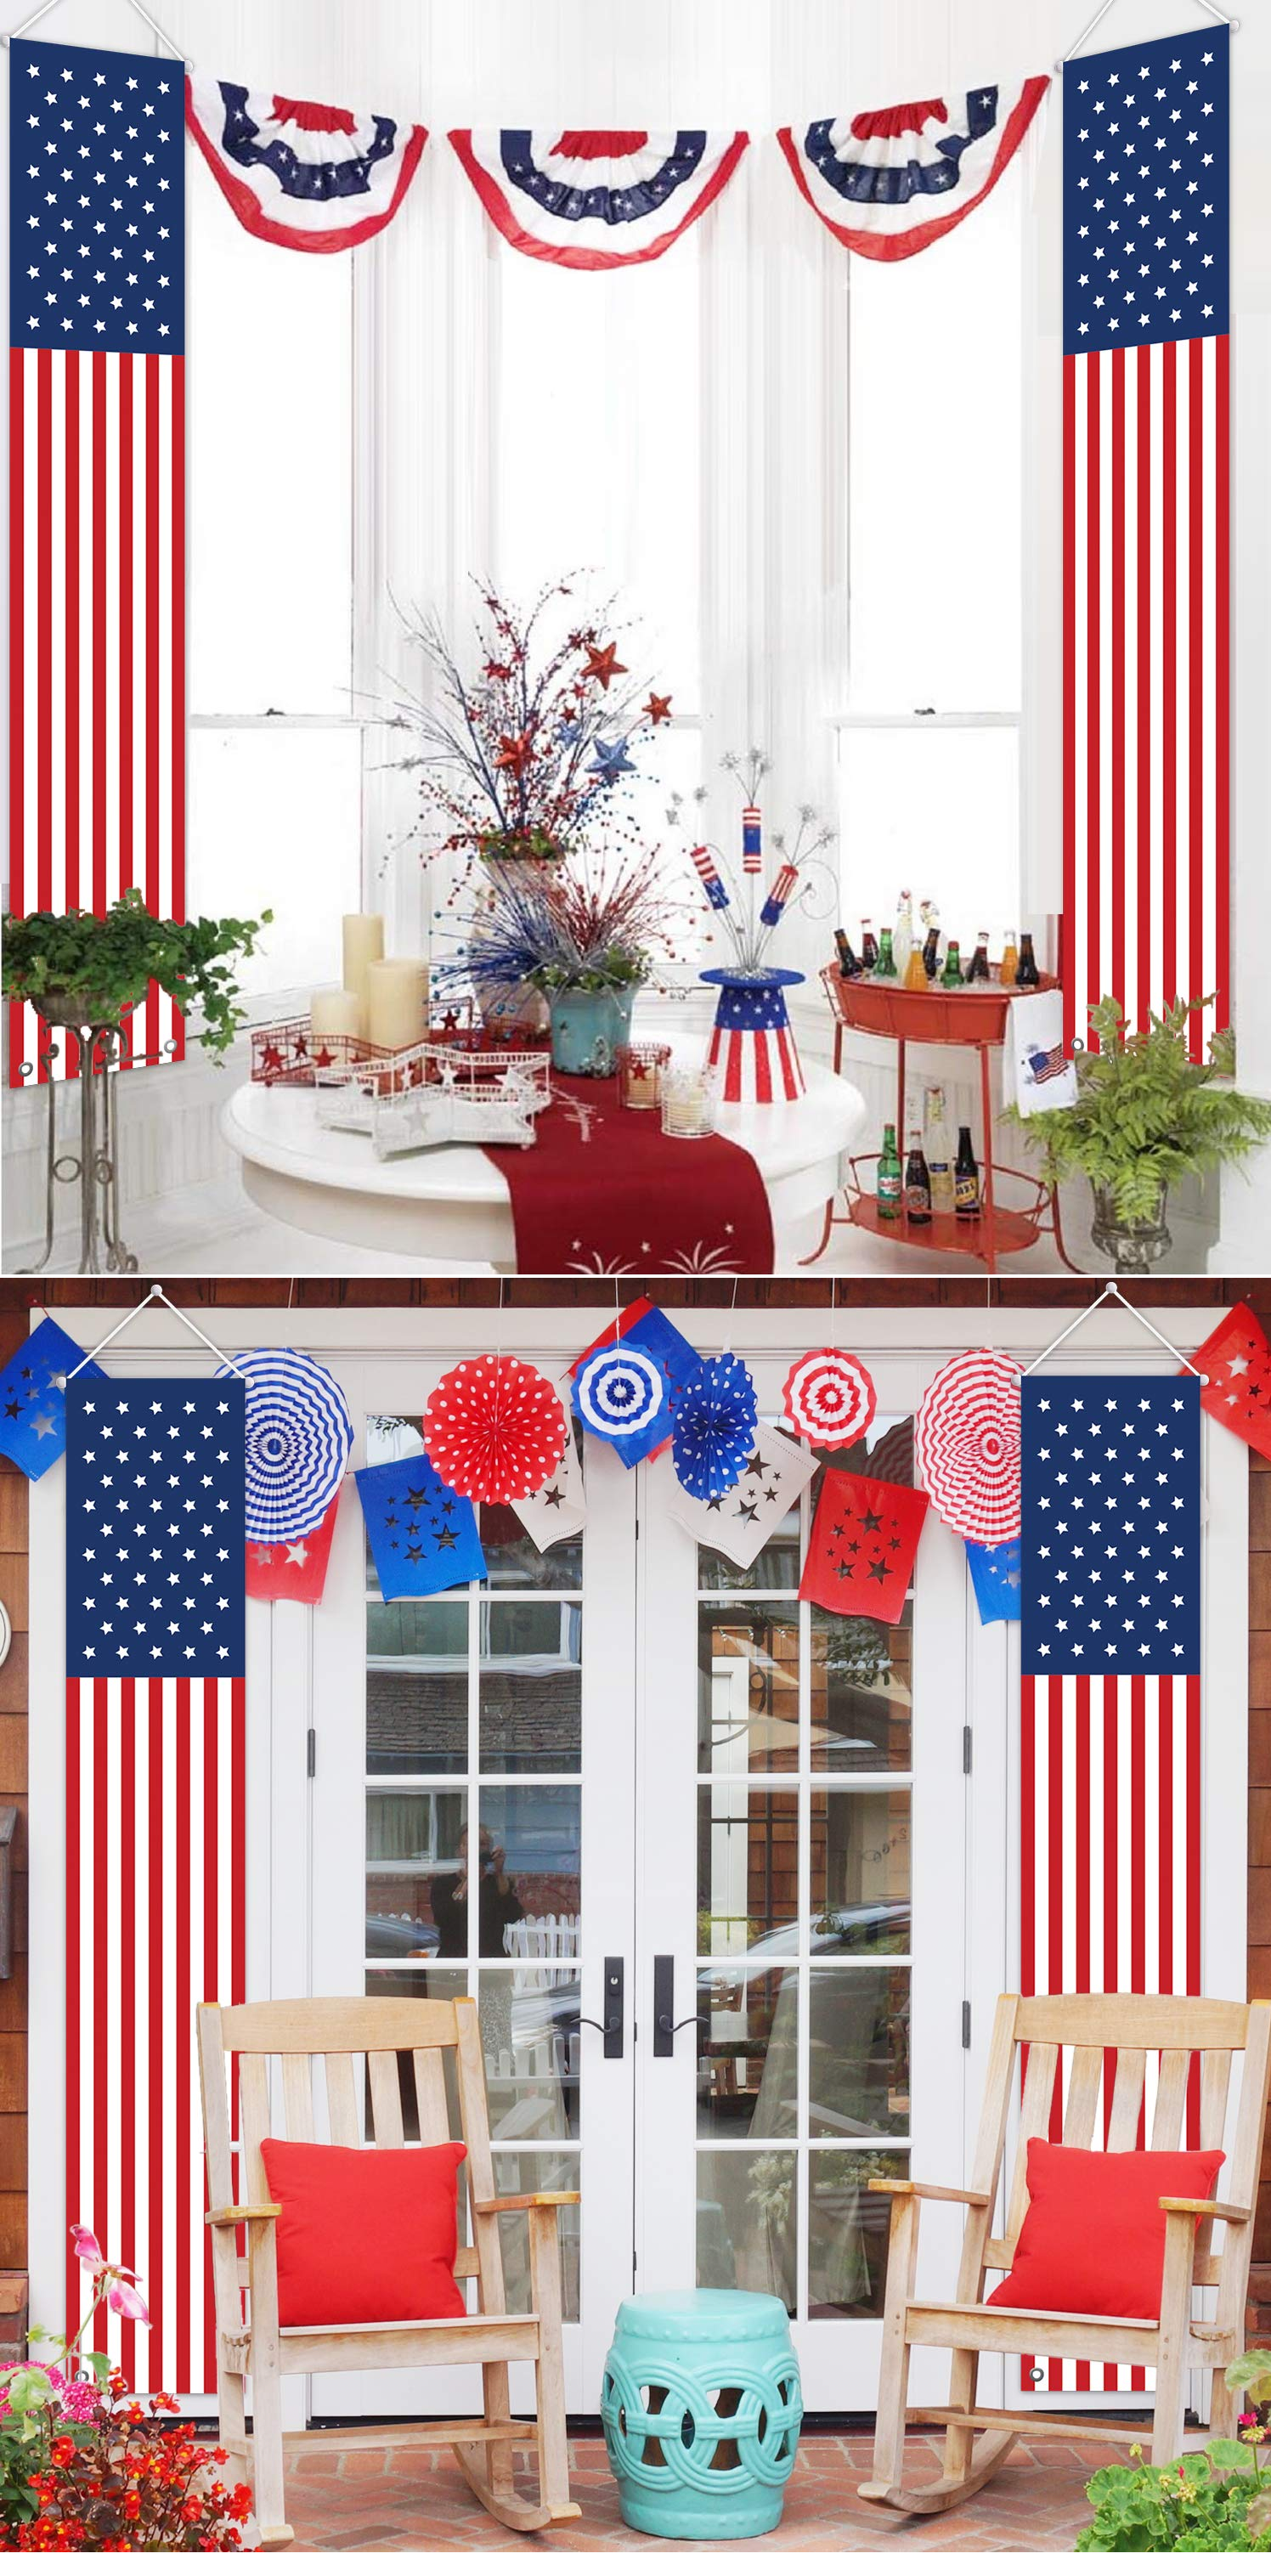 Christmas In July Party Supplies.Mordun Patriotic Decorations For Independence Day 4th Of